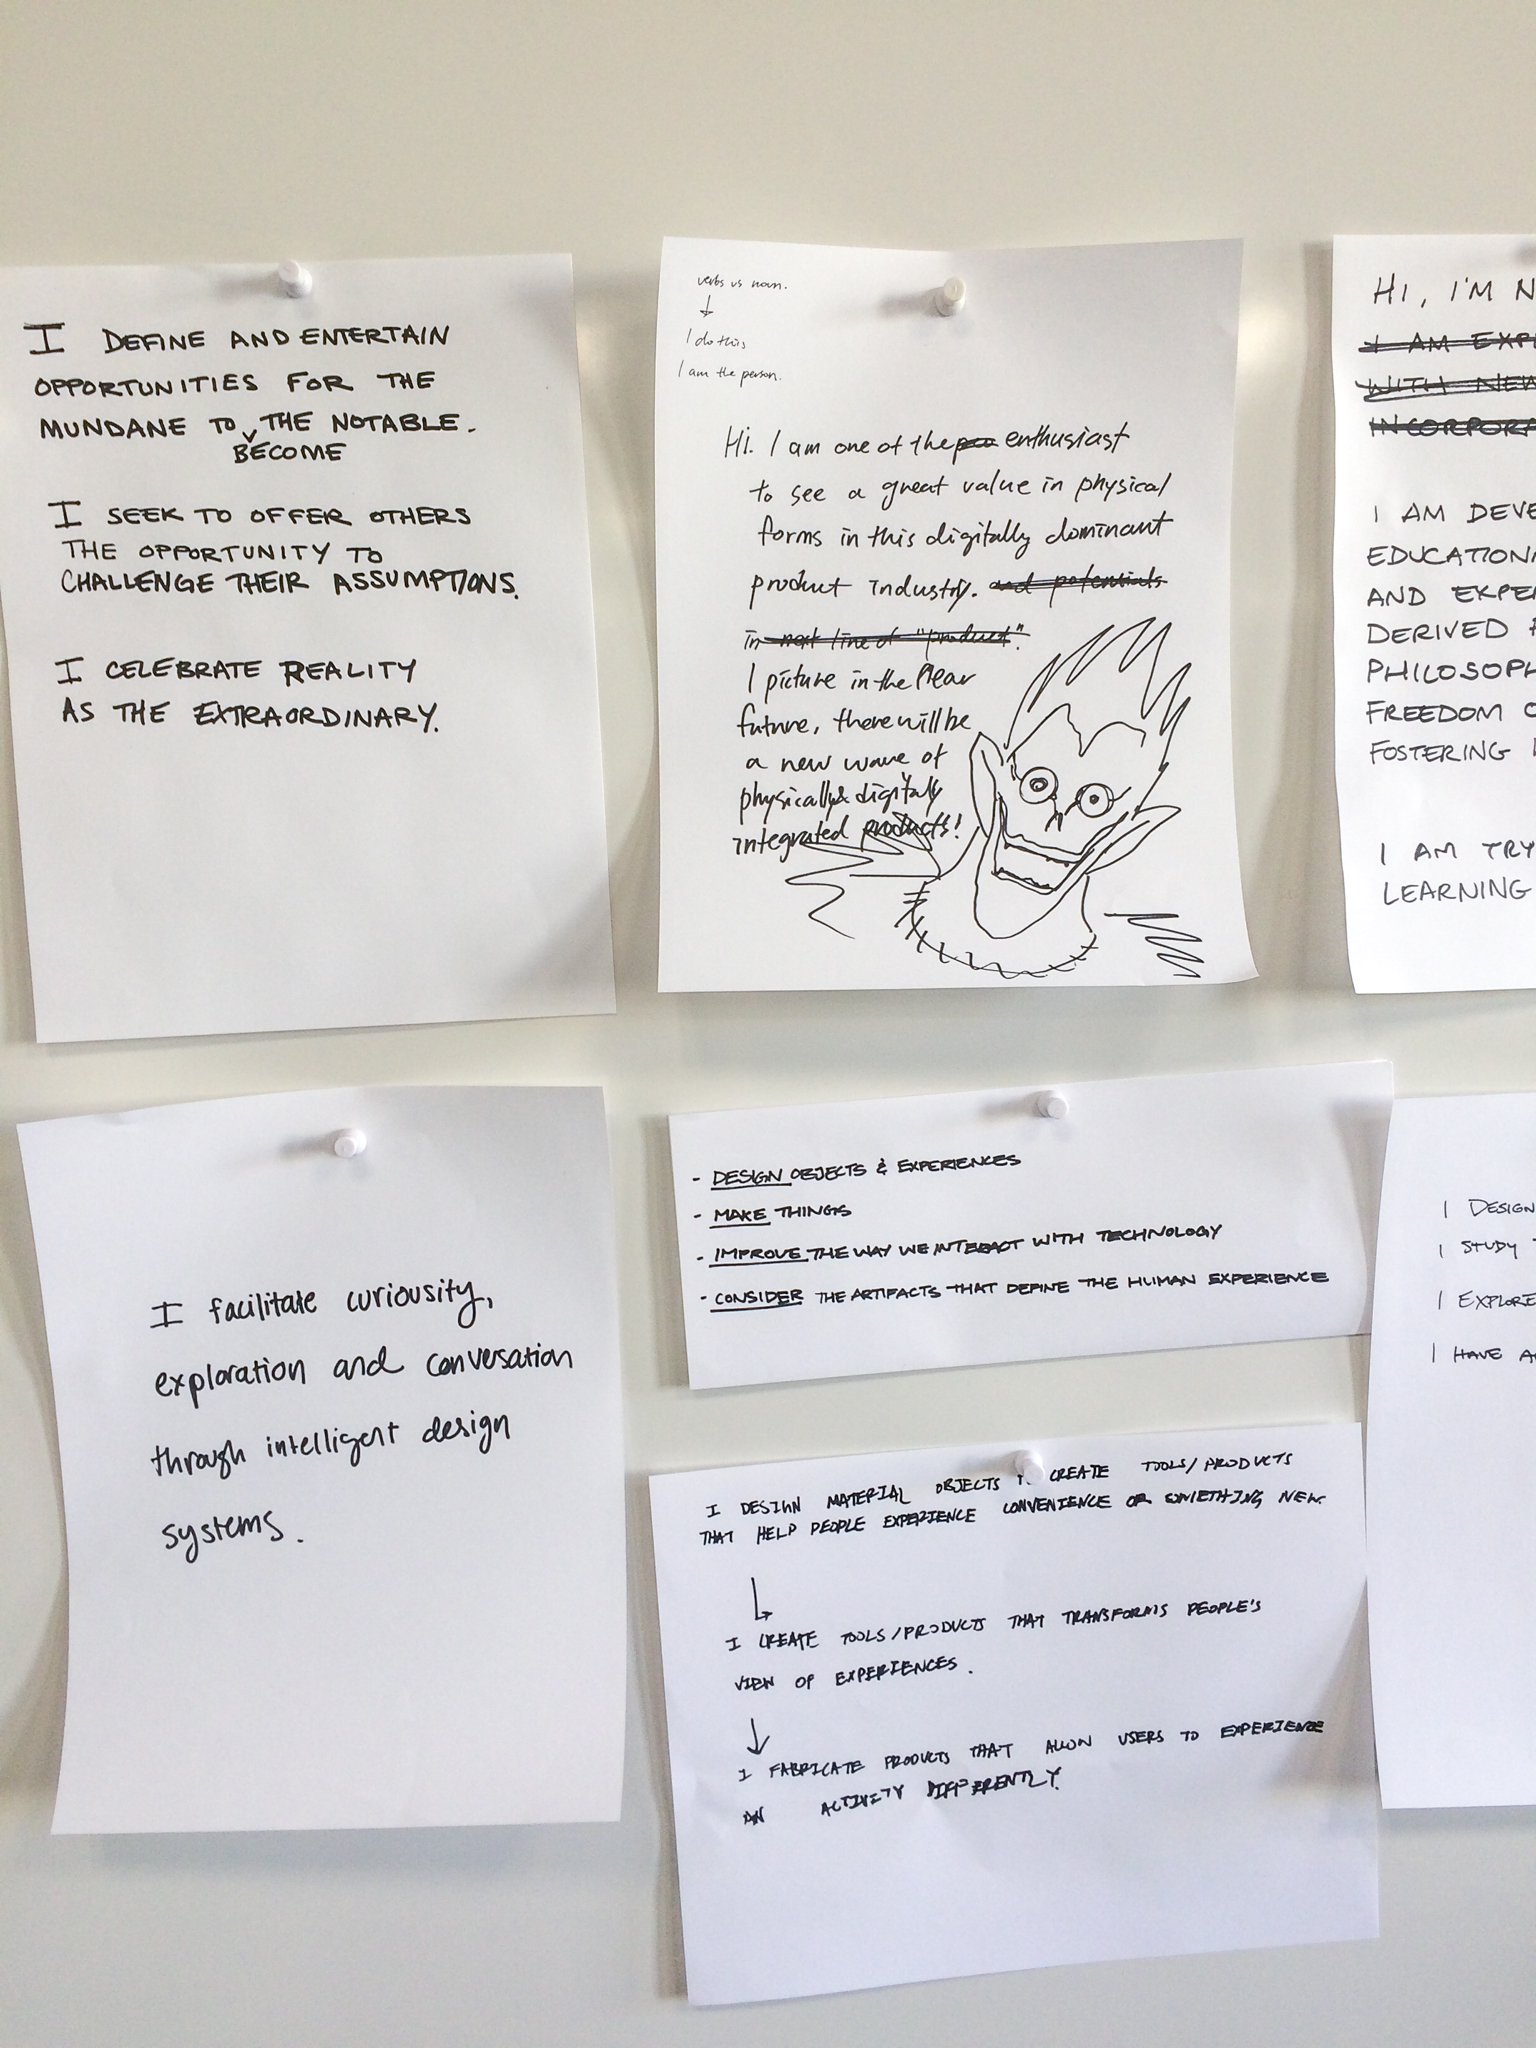 A selection of the students' self-descriptions of what they do